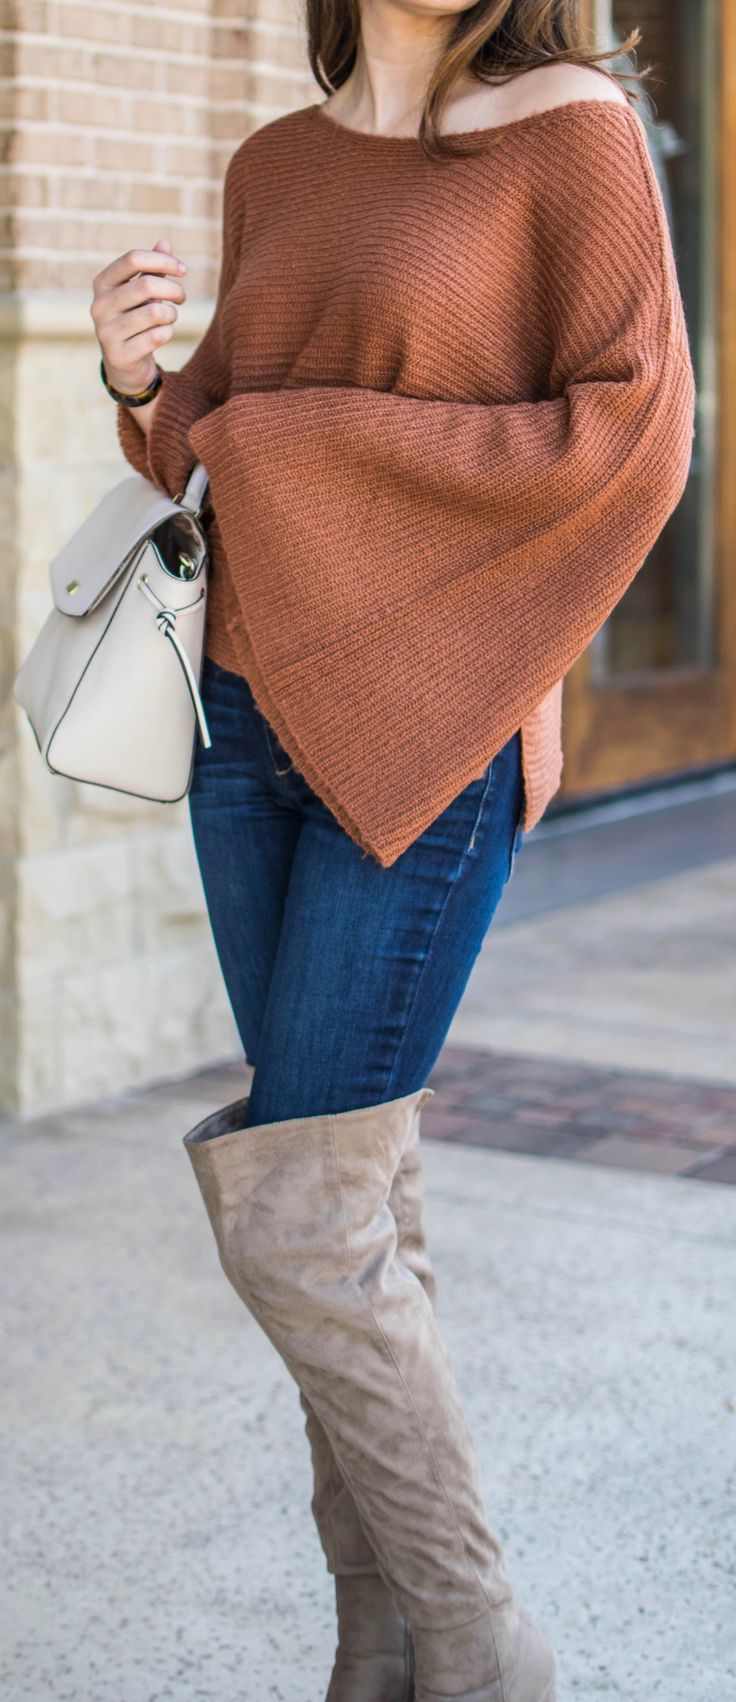 #fall #outfit #falloutfit #sweater #sweateroutfit #bellsleevesweater